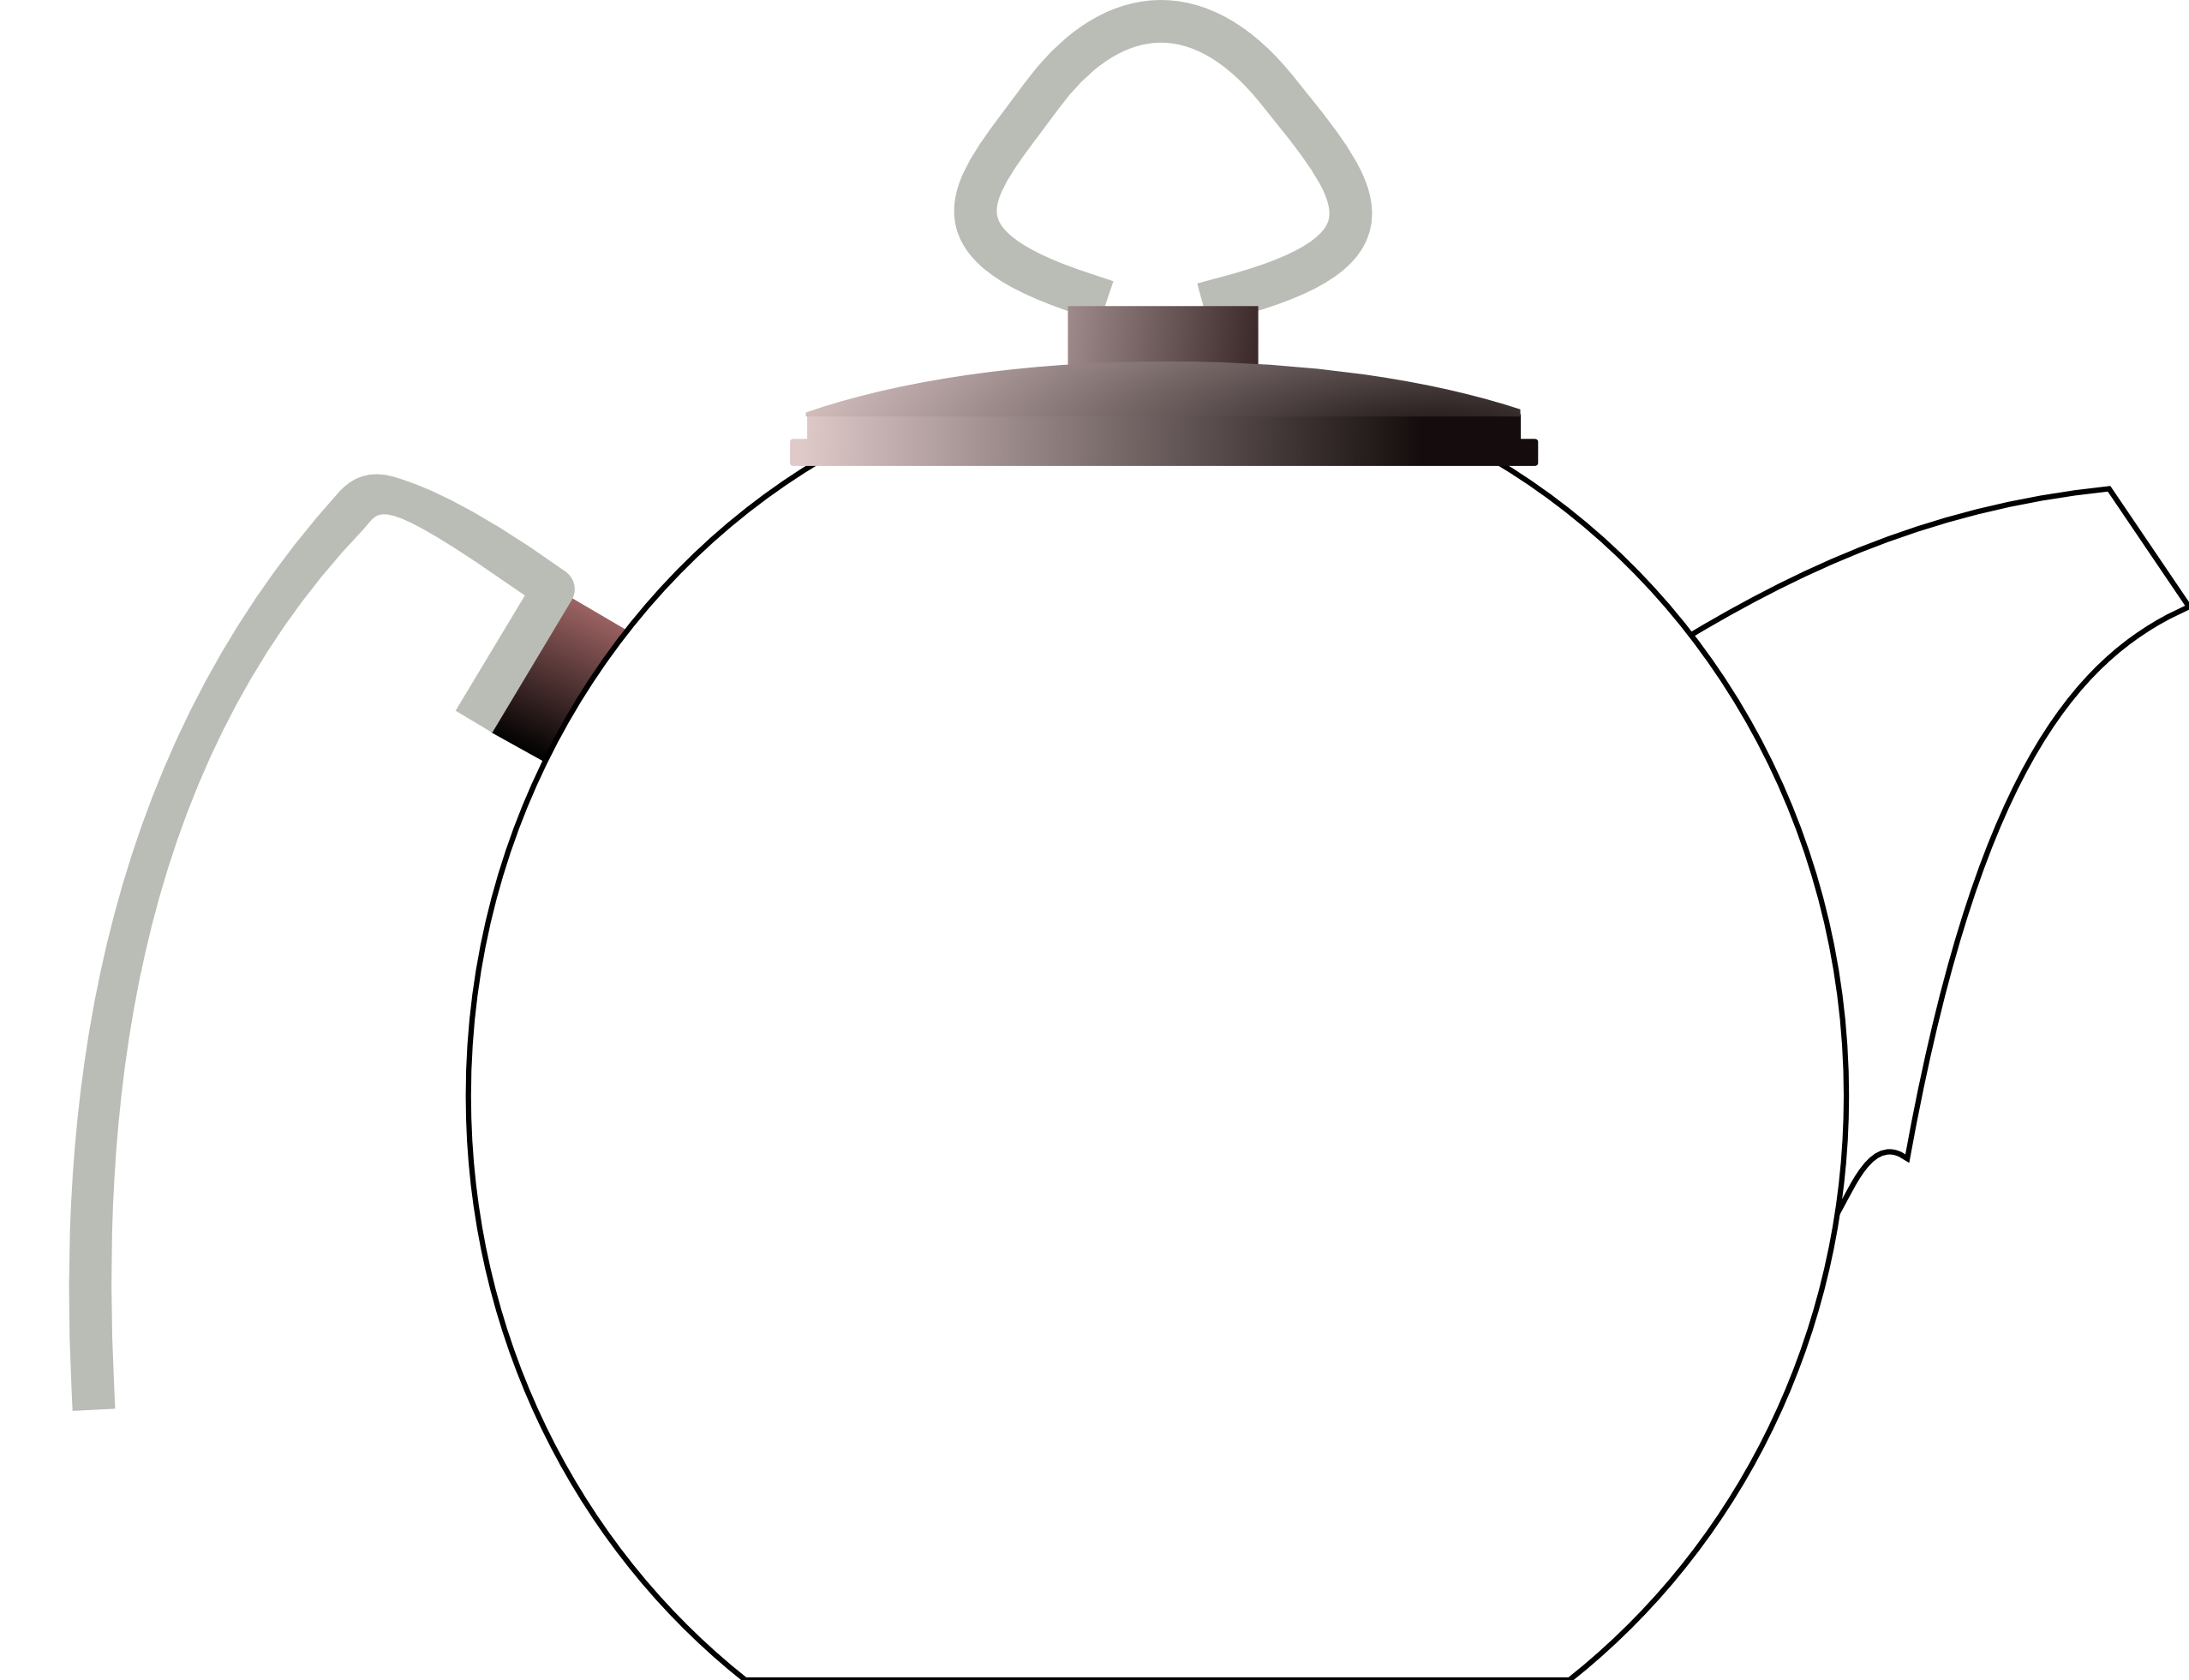 Kettle Clipart Black And White | Clipart Panda - Free Clipart Images